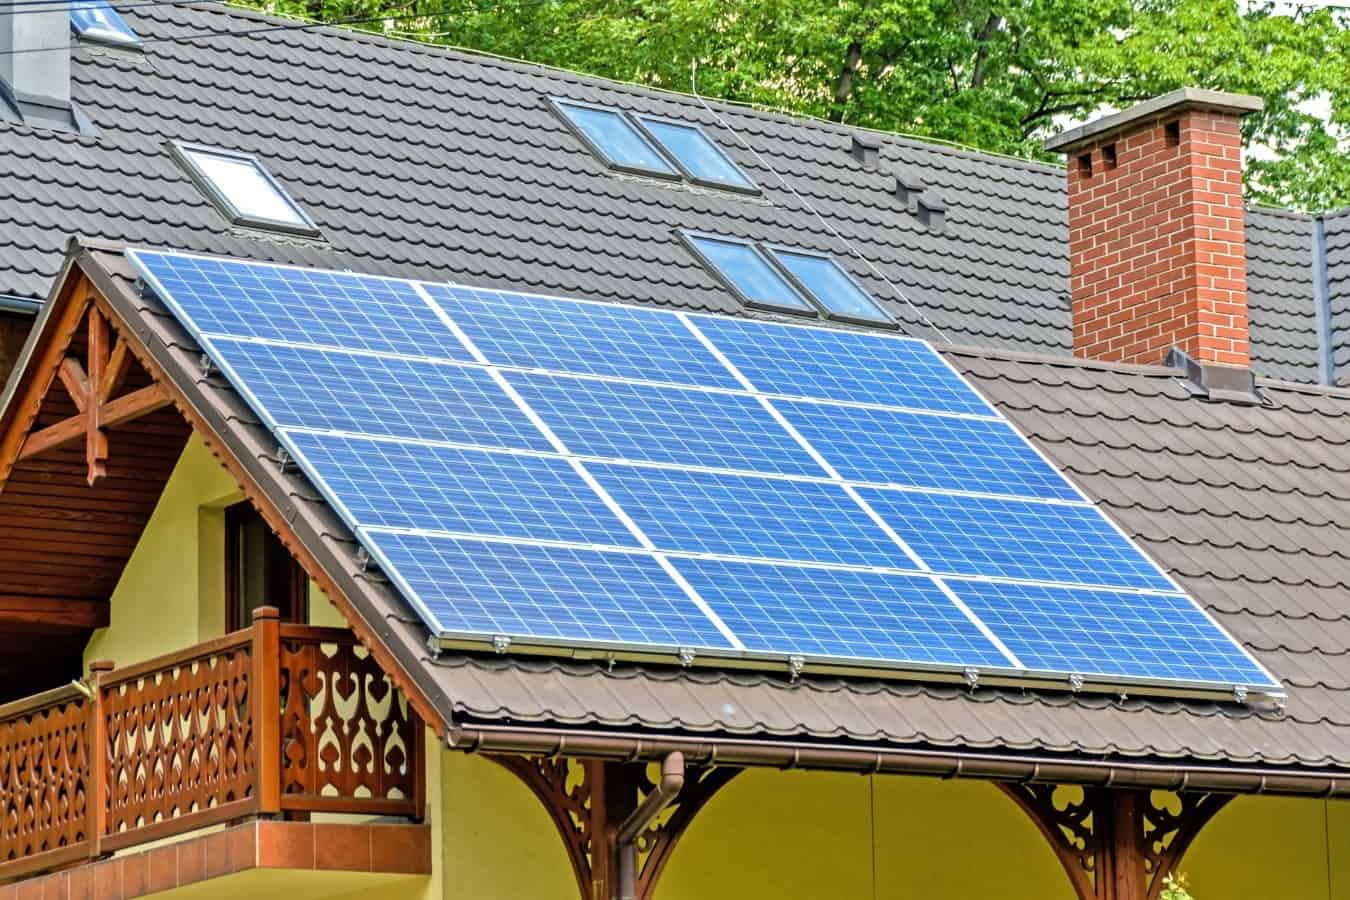 A solar panel grid installed on metal roof shingles.